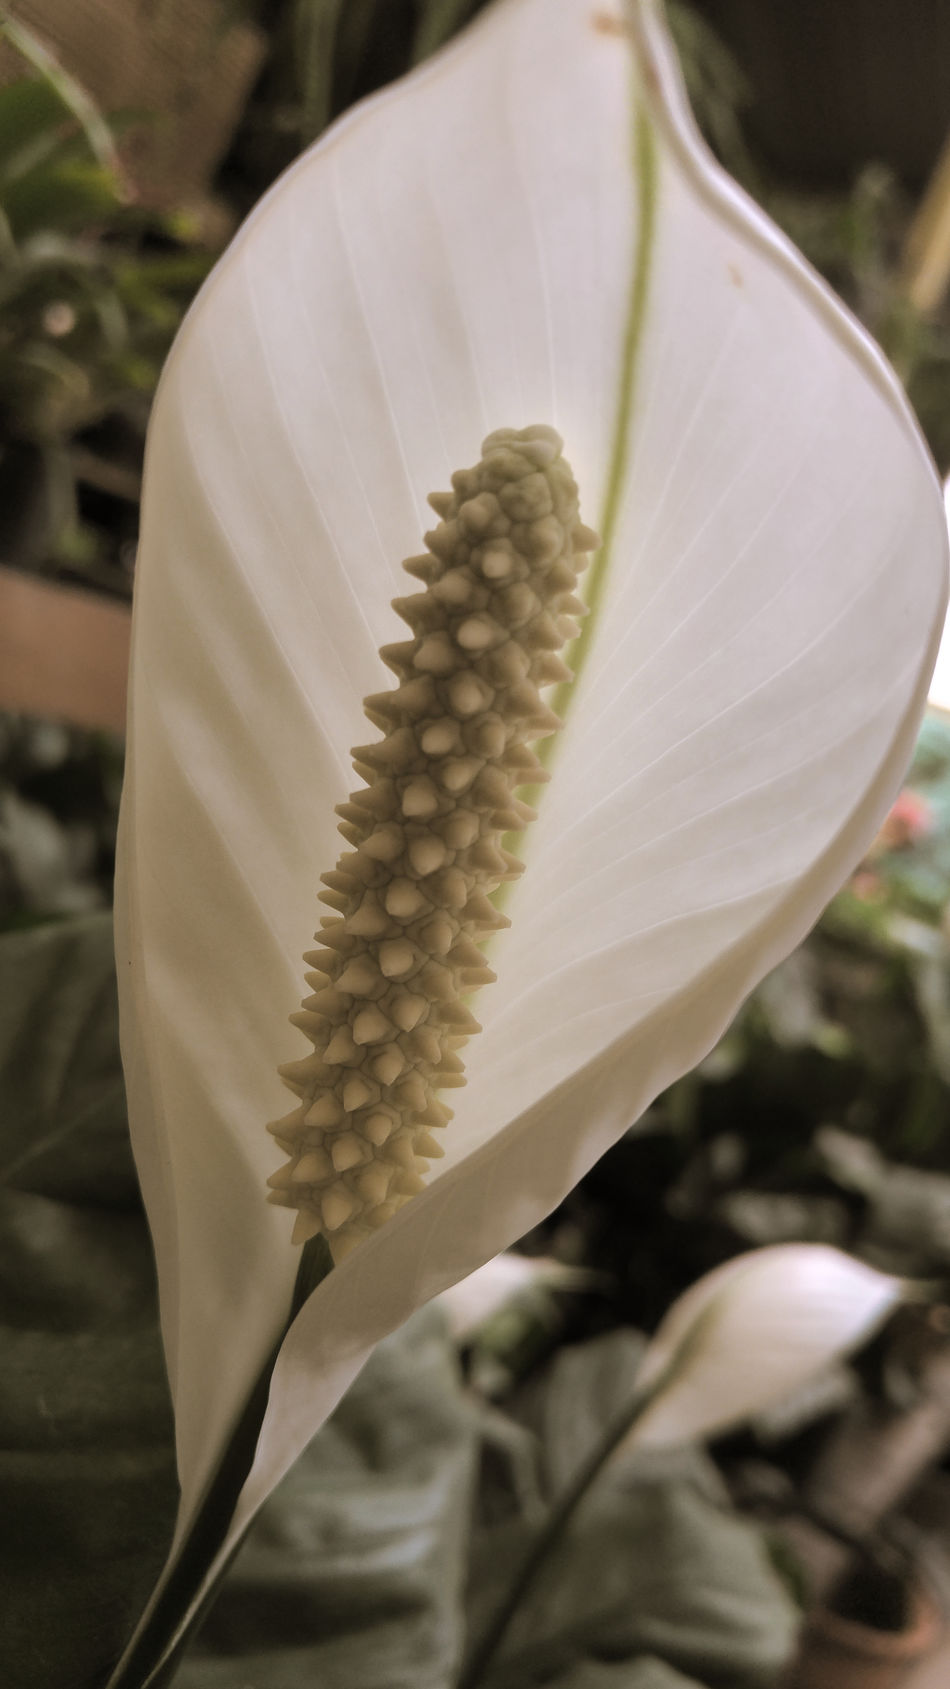 Beauty In Nature Blooming Blossom Botany Bud Flower Flower Head Focus On Foreground Freshness Growth In Bloom Monstera Deliciosa Nature Petal Plant Planta De Queso Suizo Pollen Selective Focus Single Flower Stamen Swiss Cheese Plant White White Color Still Life Flower Photography